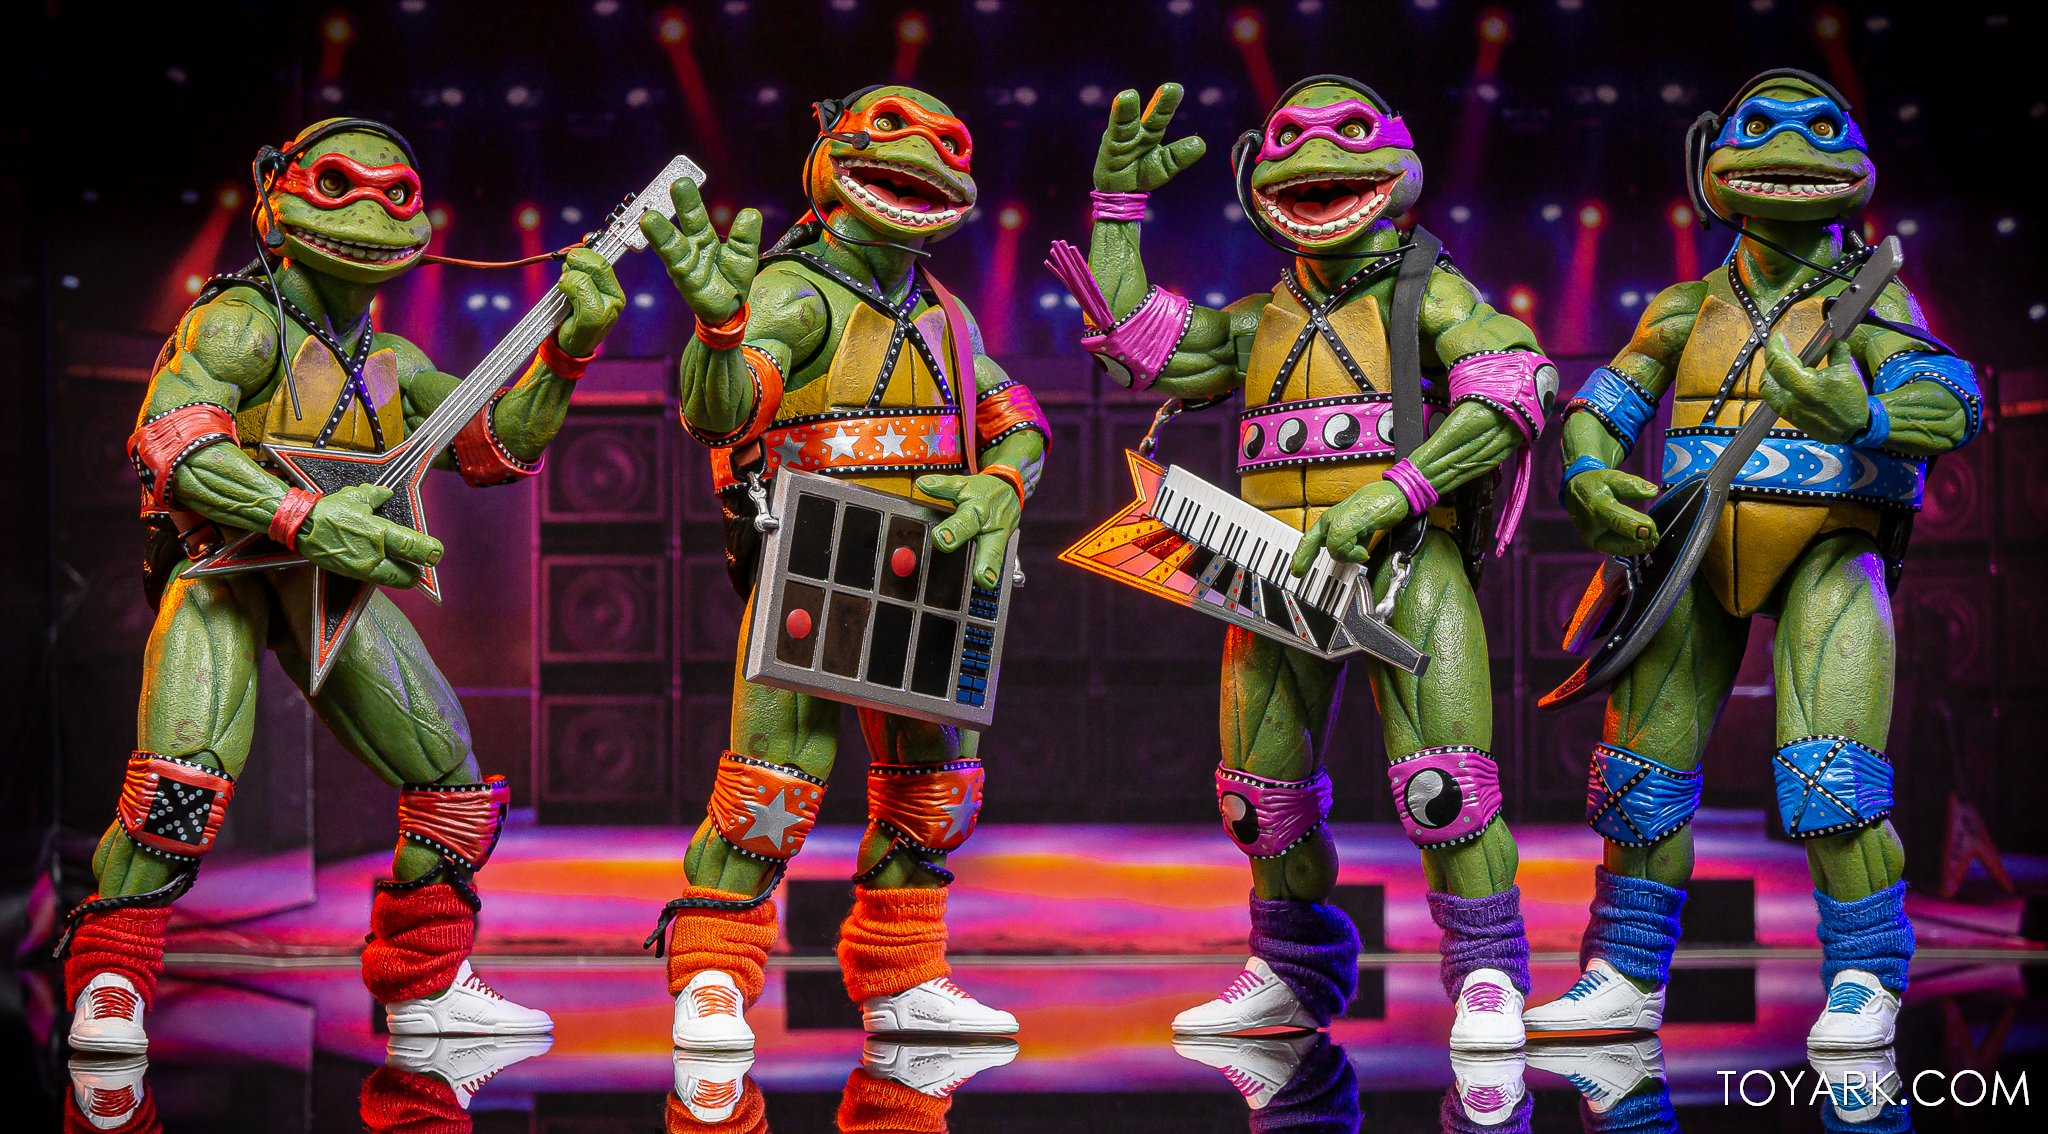 https://news.toyark.com/wp-content/uploads/sites/4/2020/07/SDCC-2020-TMNT-Musical-Mutagen-Tour-052.jpg